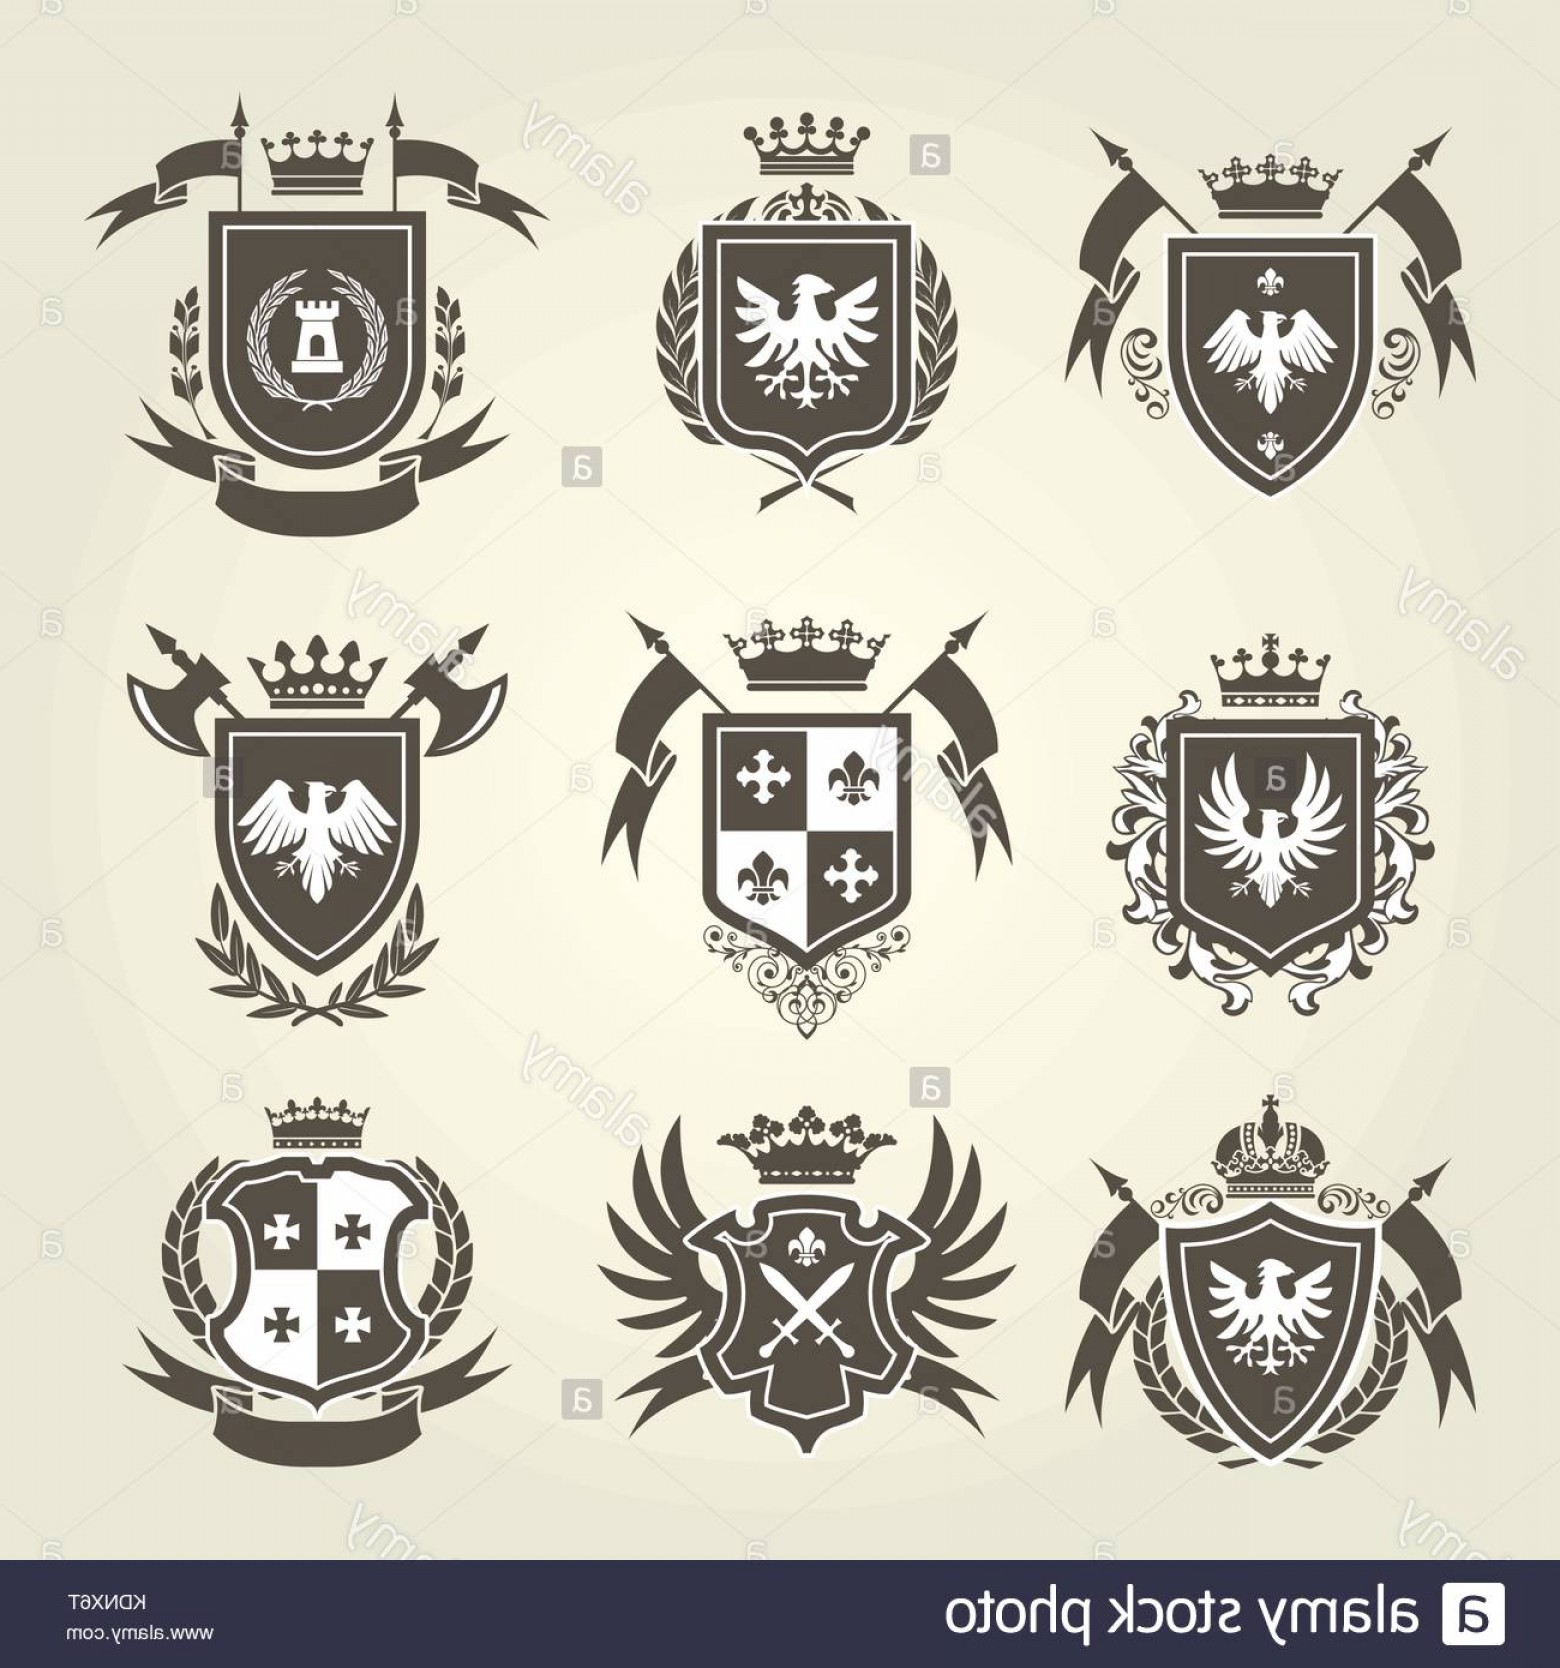 Crest And Coat Of Arms Vector Silhouette: Stock Image Medieval Royal Coat Of Arms And Knight Emblems Heraldic Shield Crest